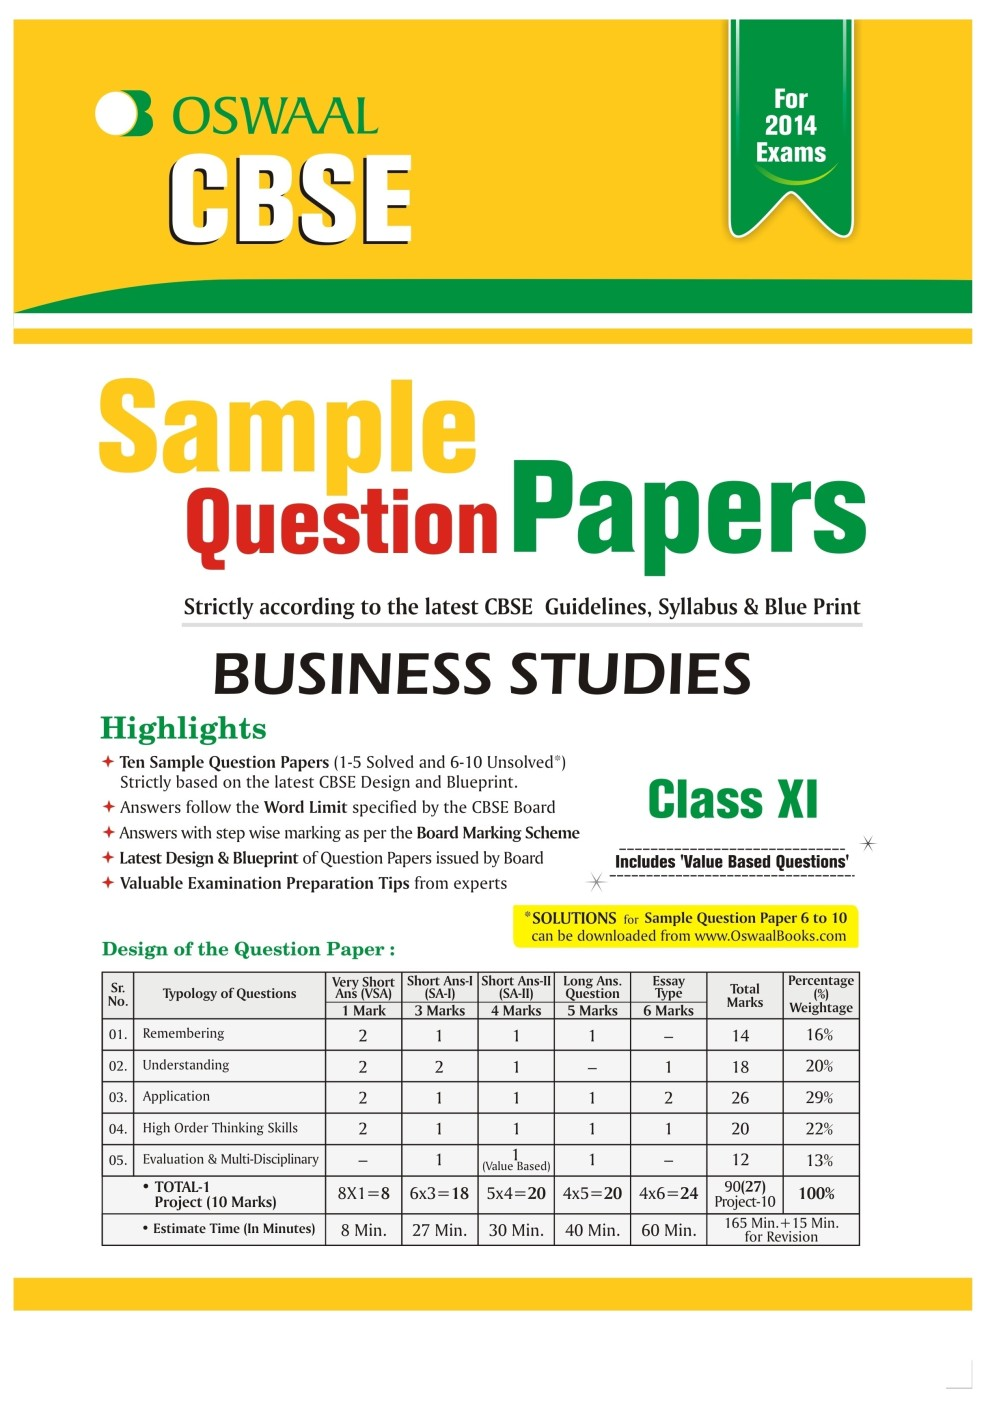 oswaal cbse sample question papers for class 11 business studies facebook